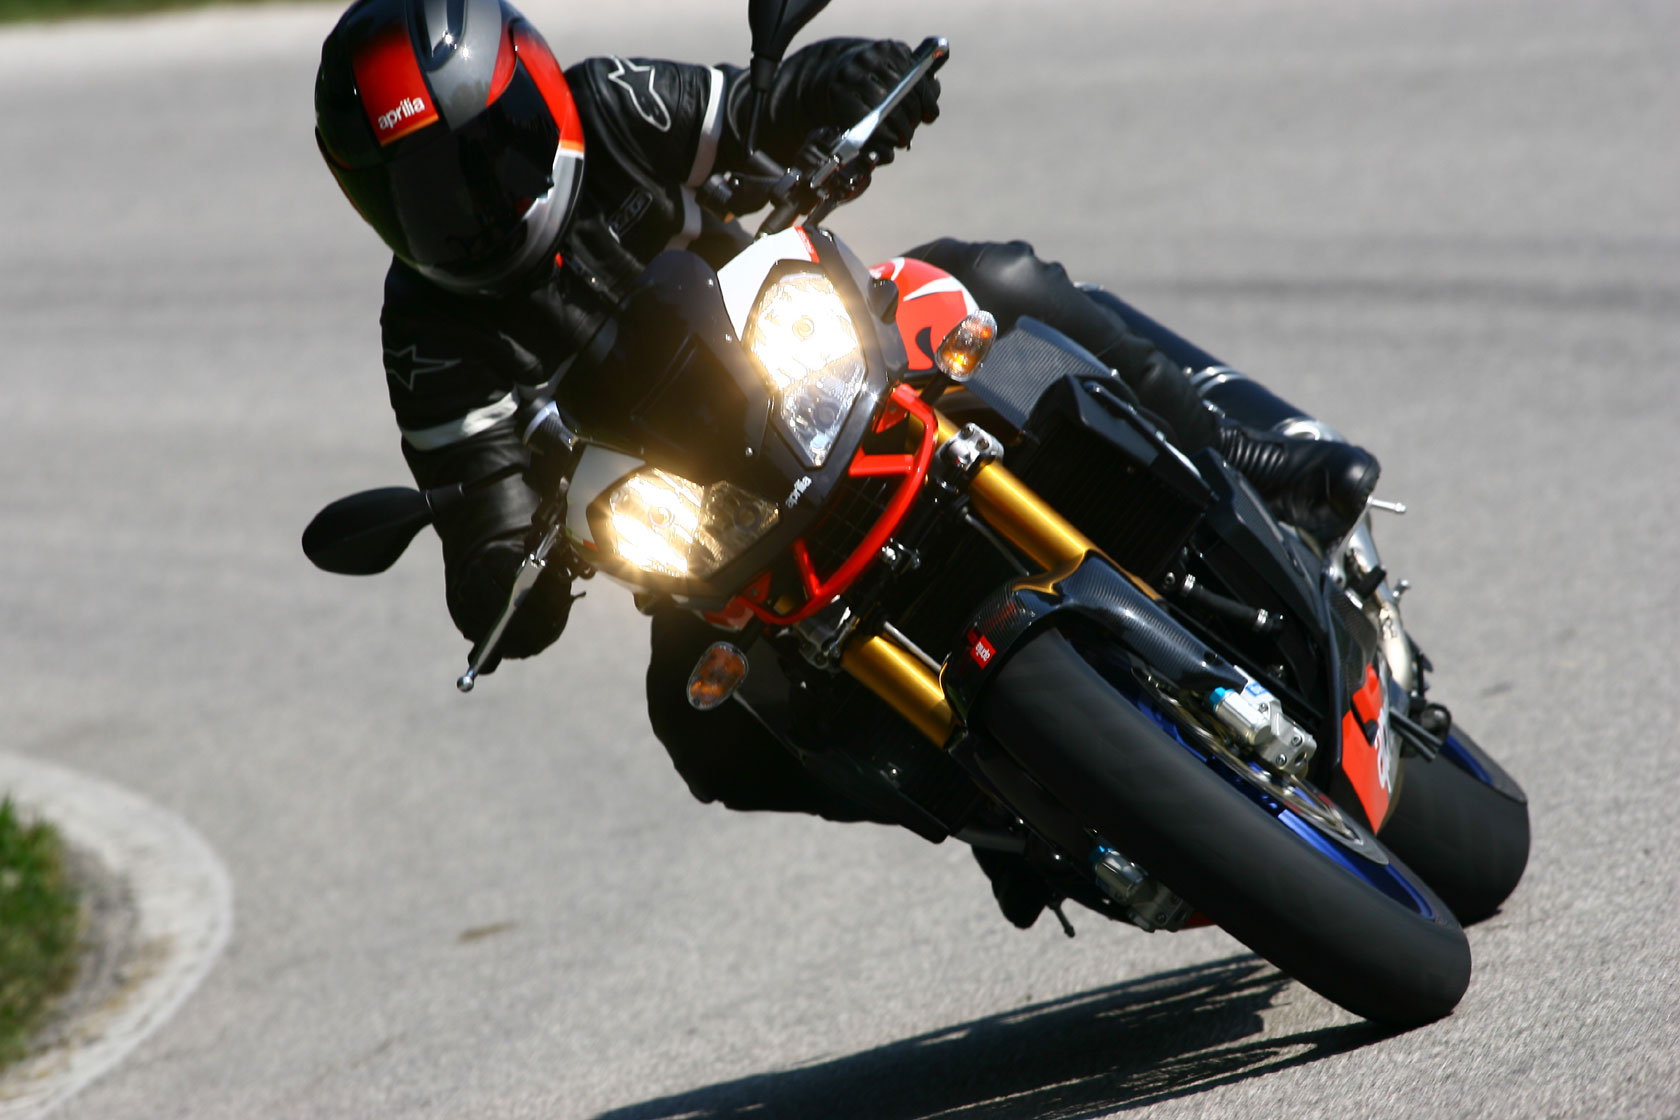 2009 Aprilia Tuono 1000 R Factory Best Action